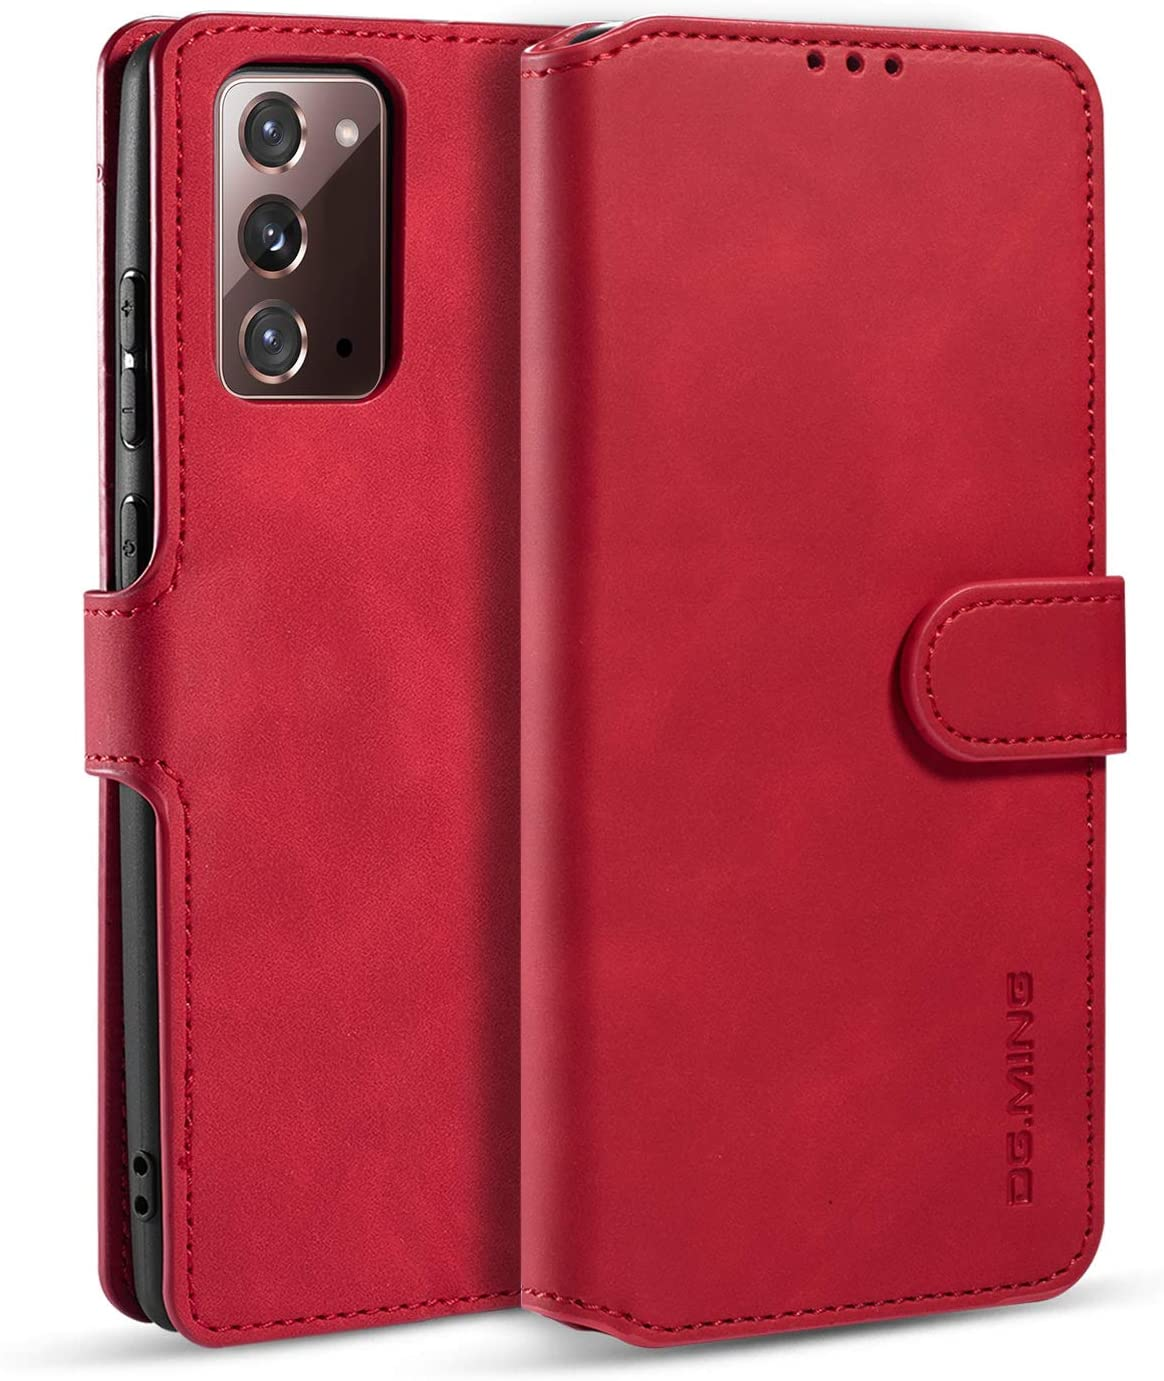 DG.MING Wallet Case for Huawei Mate 30, Premium Leather Wallet Phone Case Vintage Leather with Viewing Stand & 3 Card Holder Flip Folio Cover with Card Slot